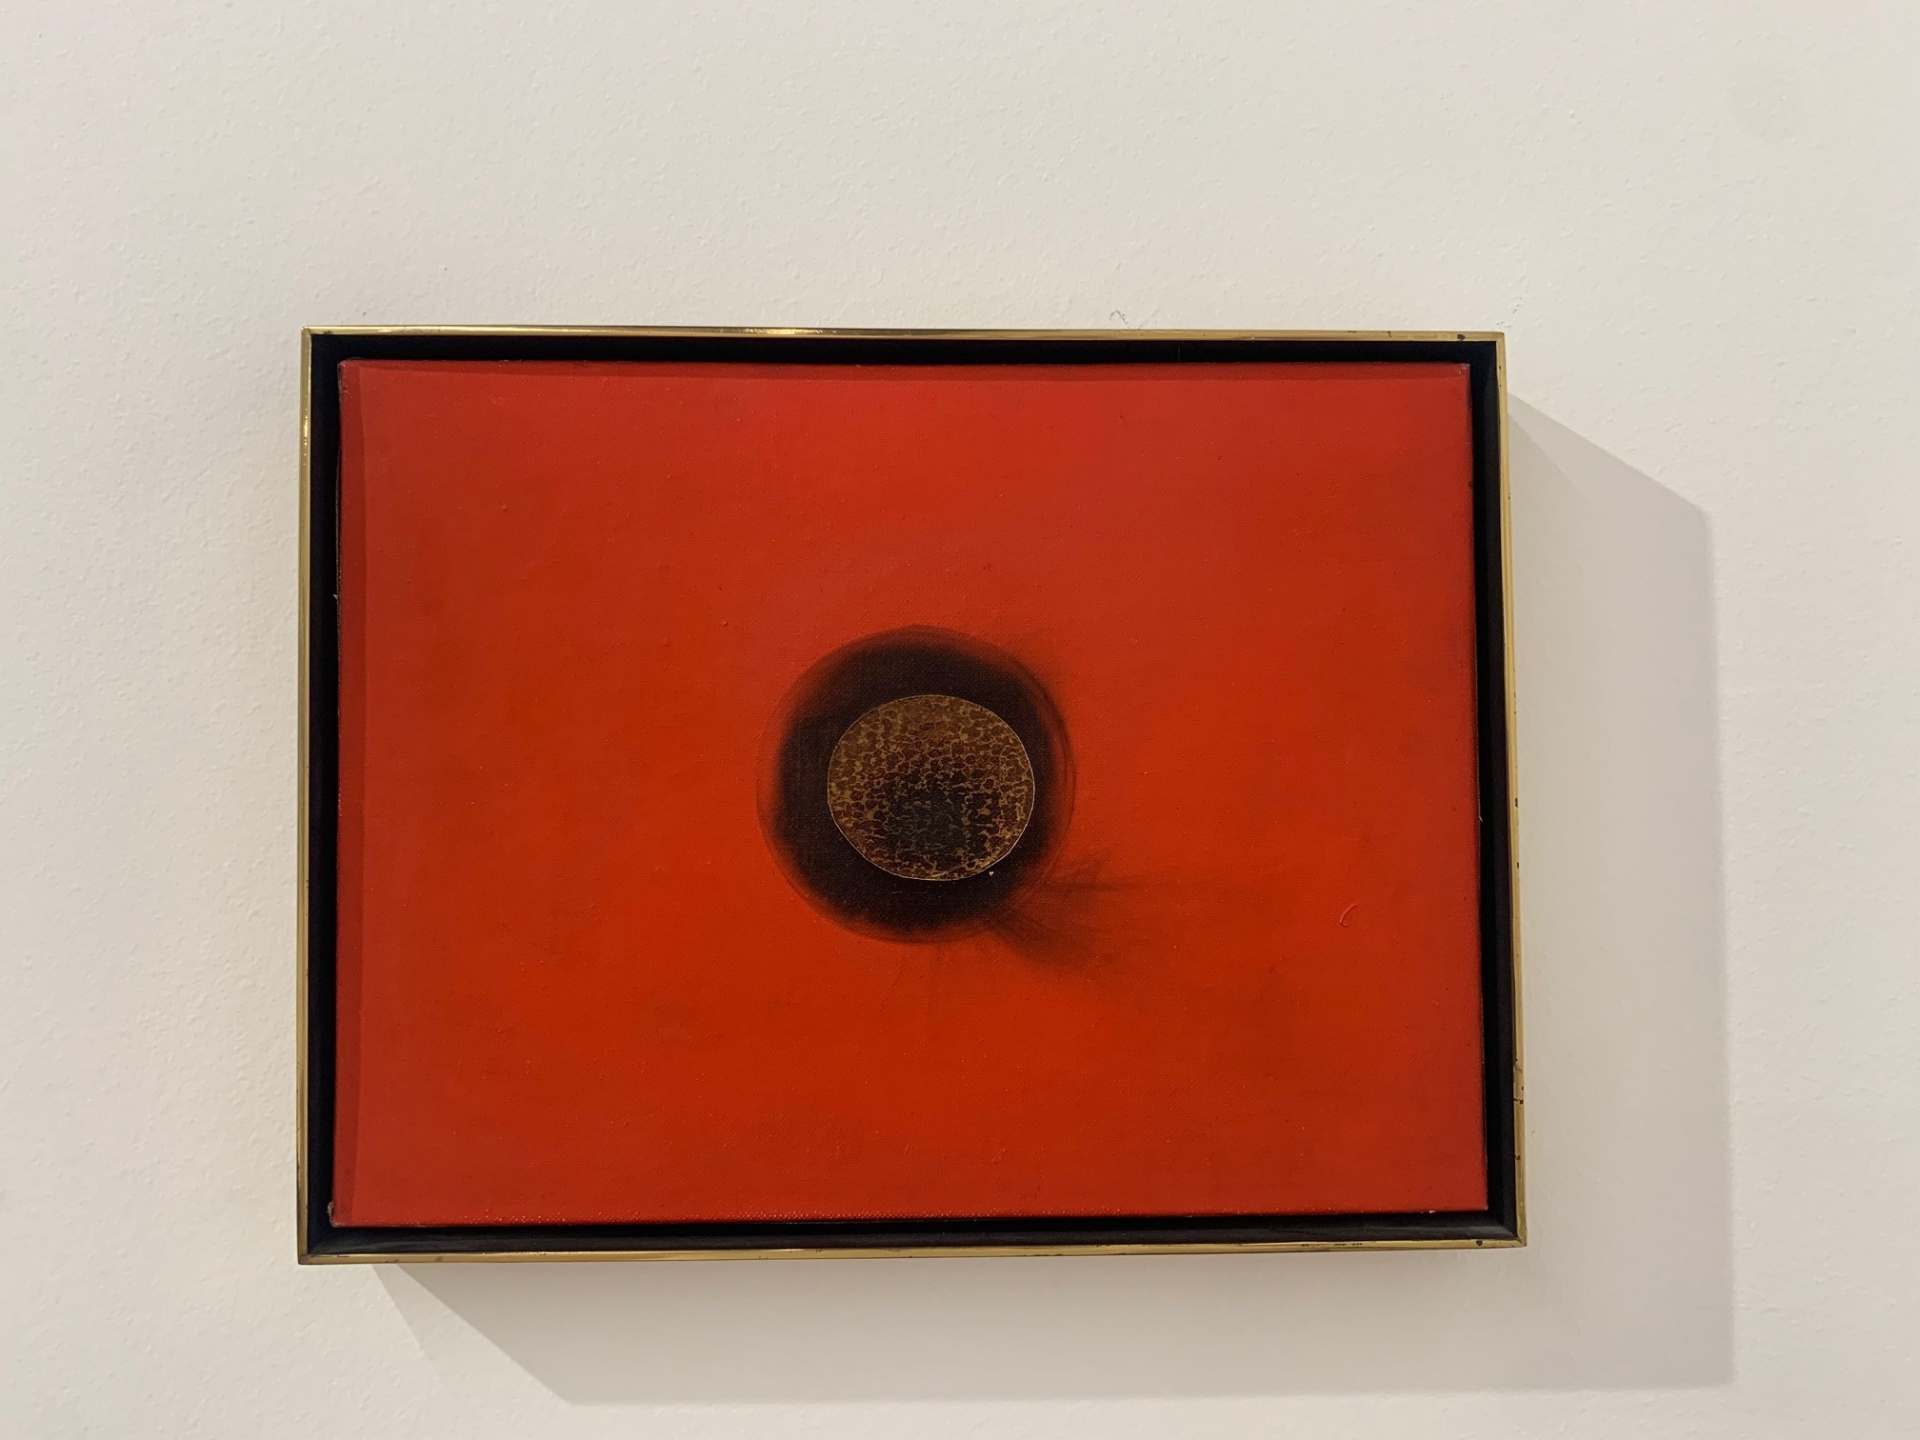 Otto Piene, Small Fire Painting, 1964